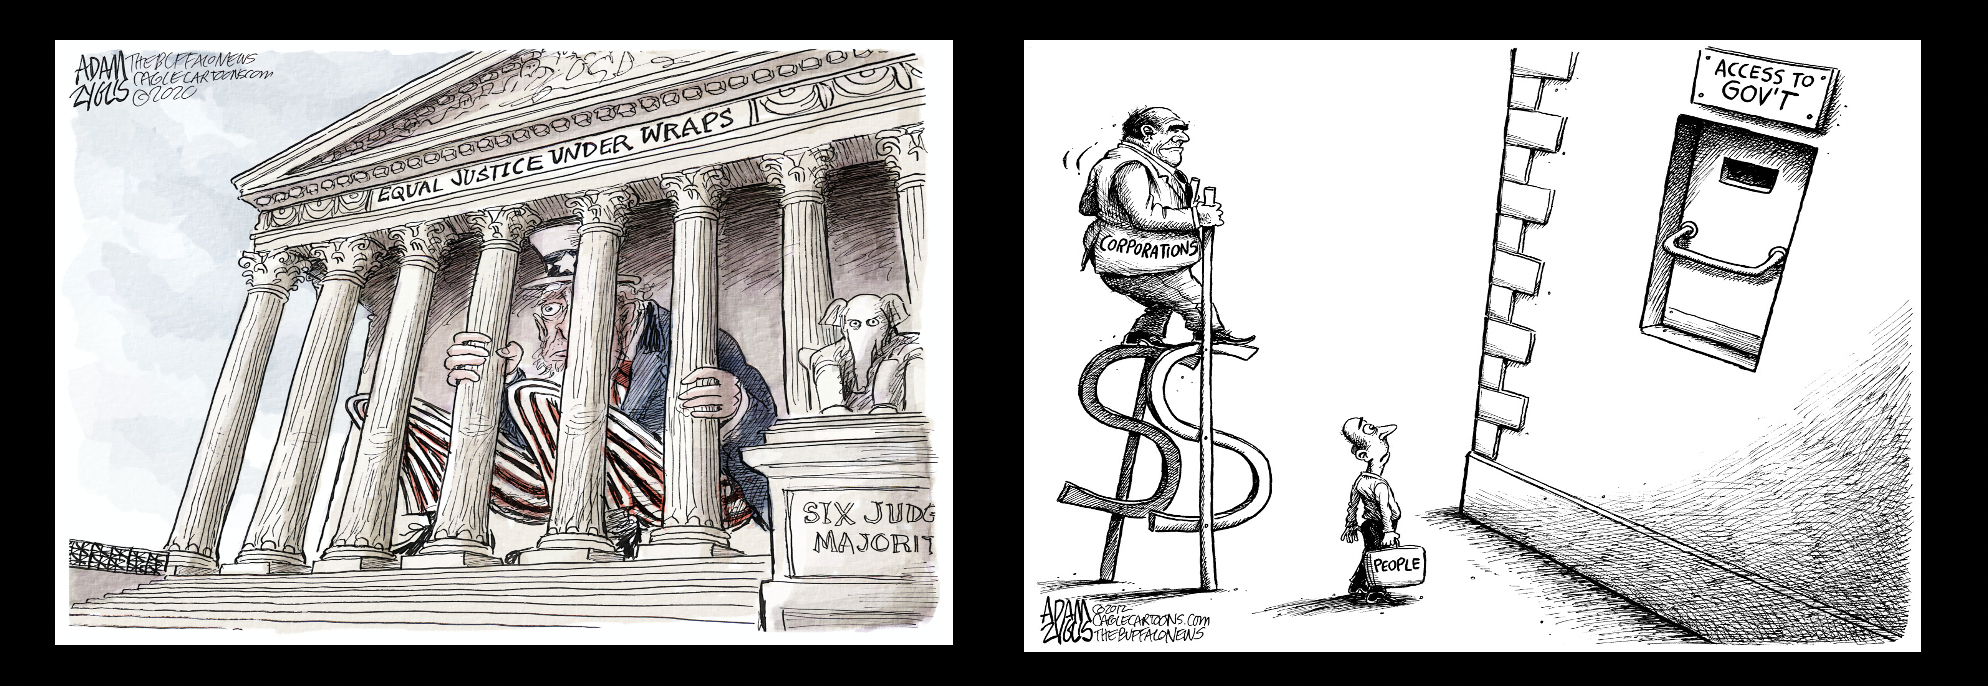 Republicans stack Supreme Court to pass Citizens United that opens flood gates to special interest money in elections